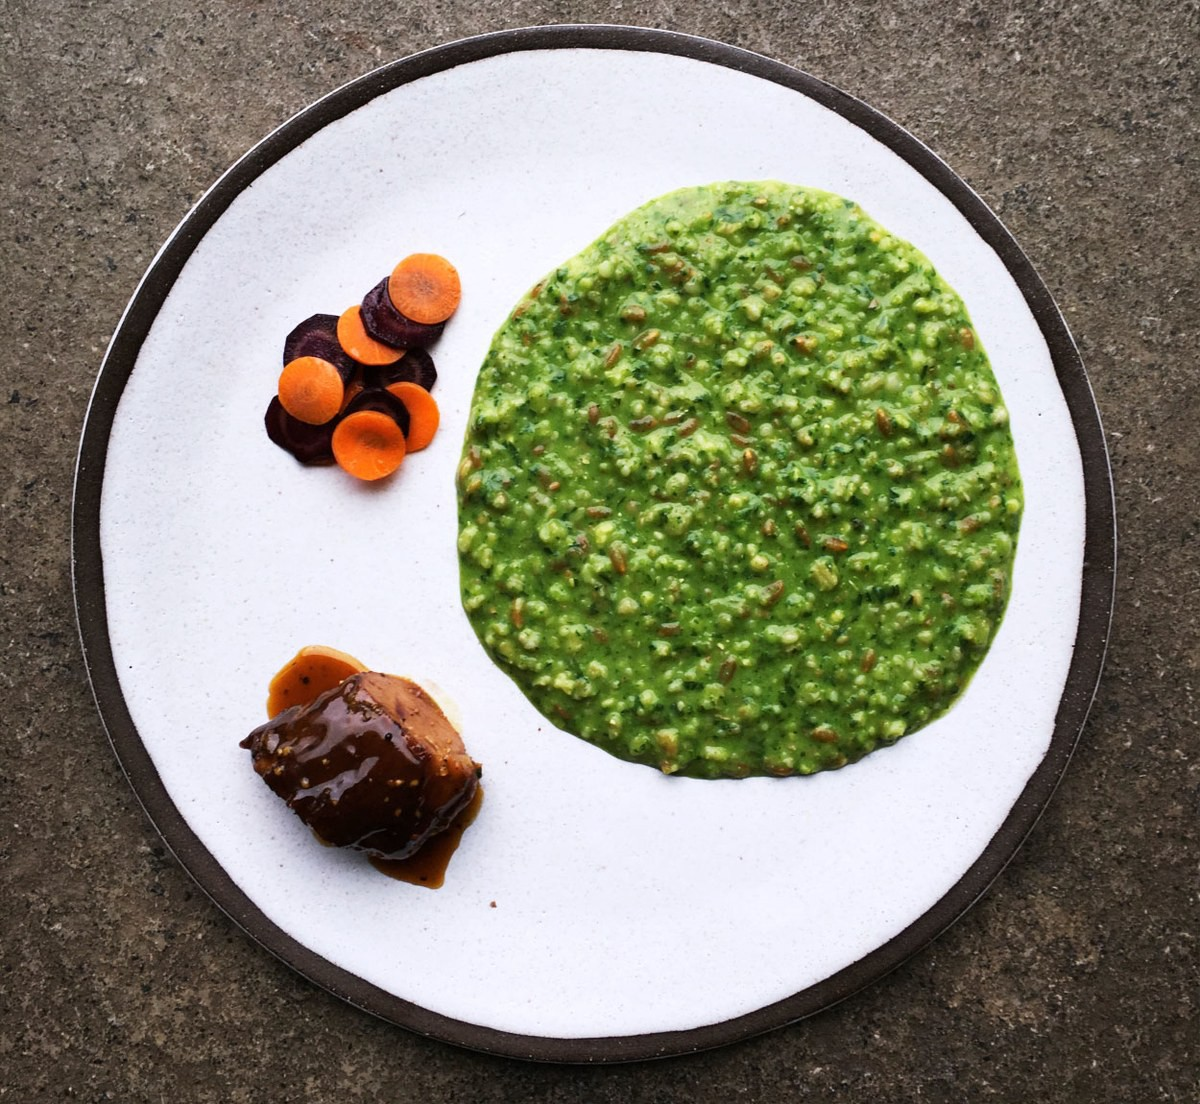 Image by Marcus Nilsson from Bon Appétit